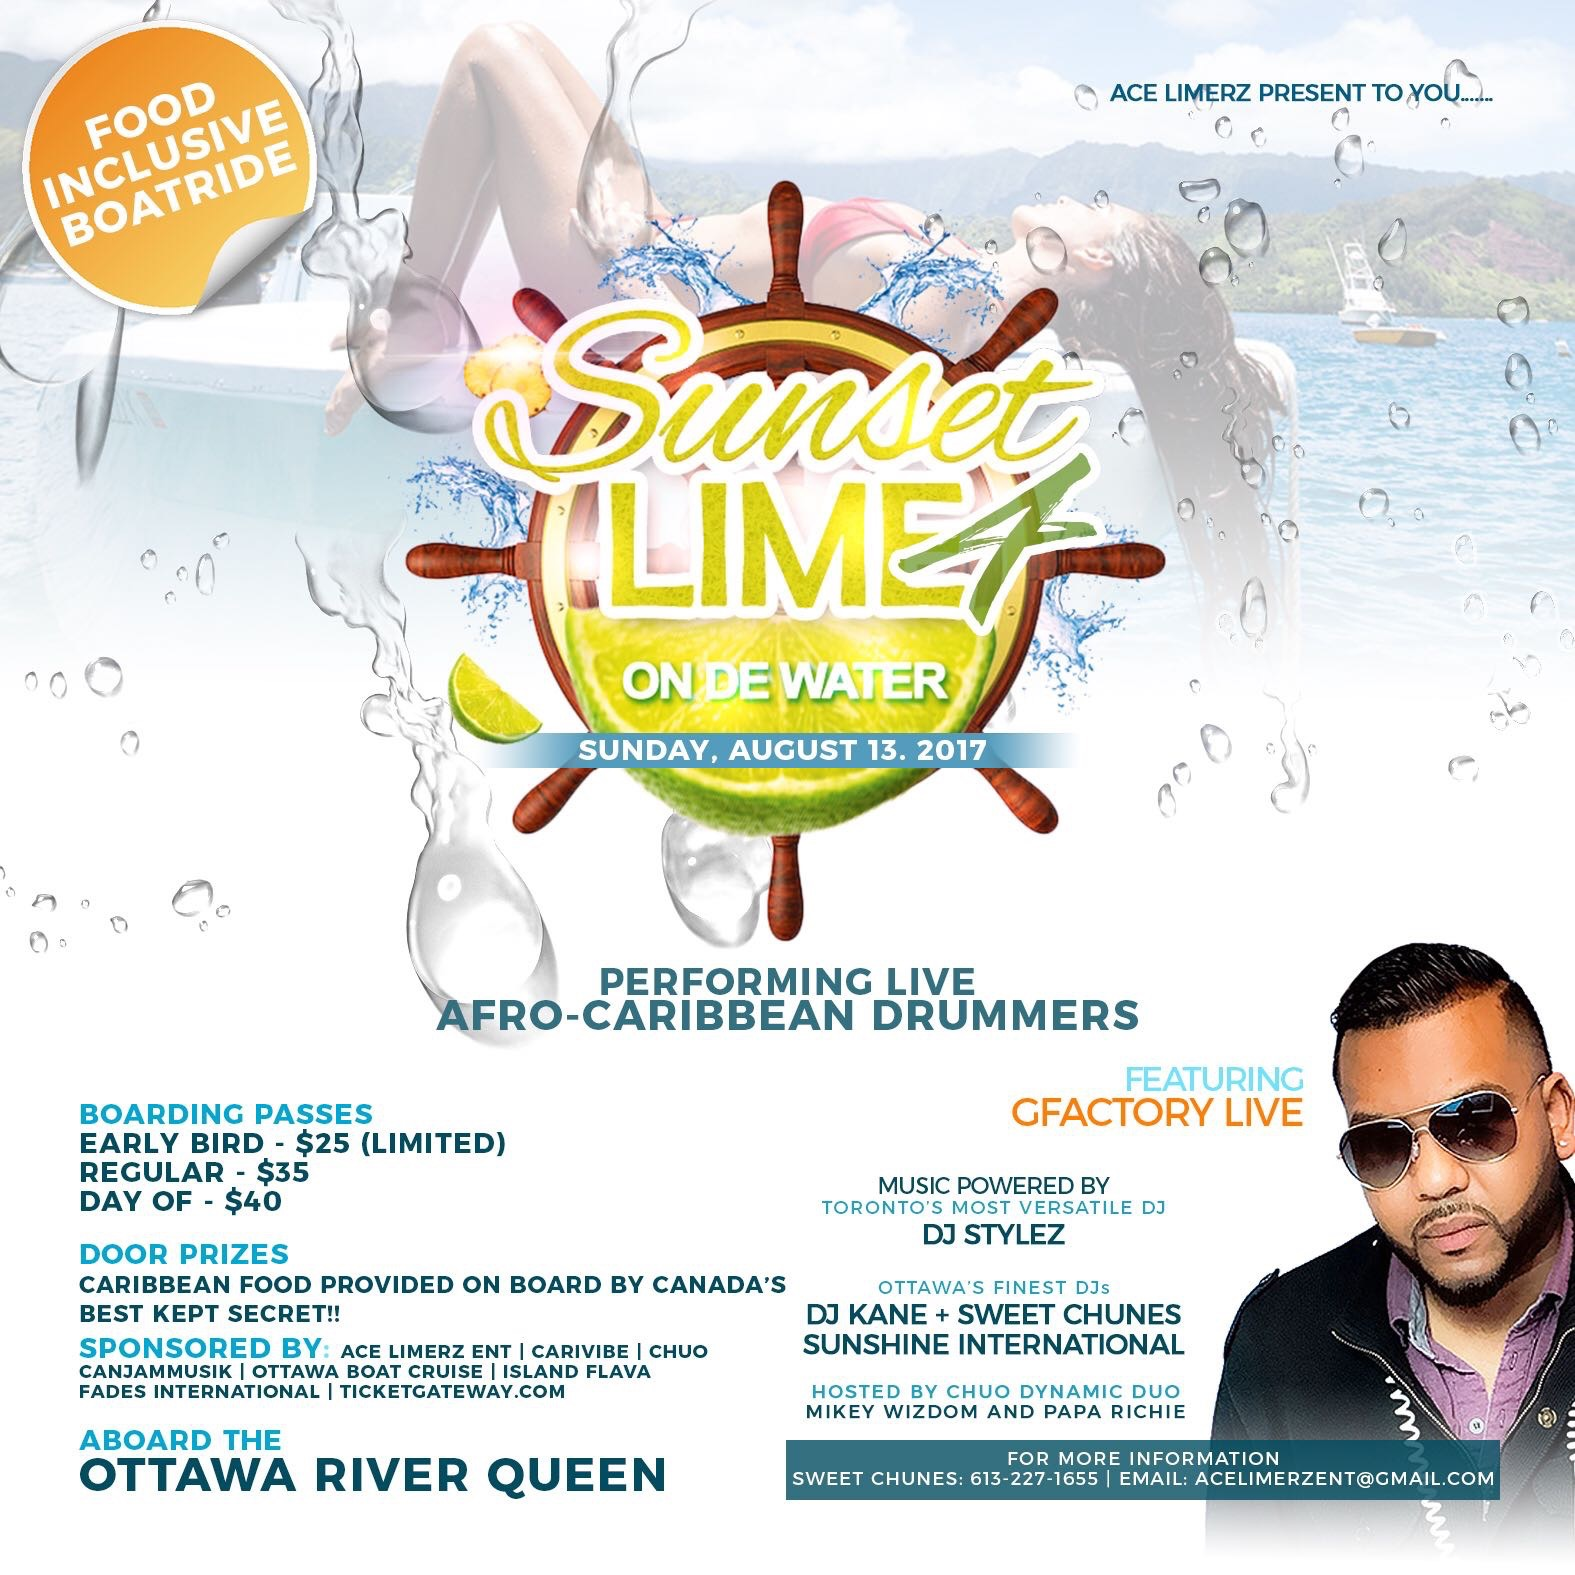 Sunset Lime 4 - Food Inclusive Daytime Boat Ride